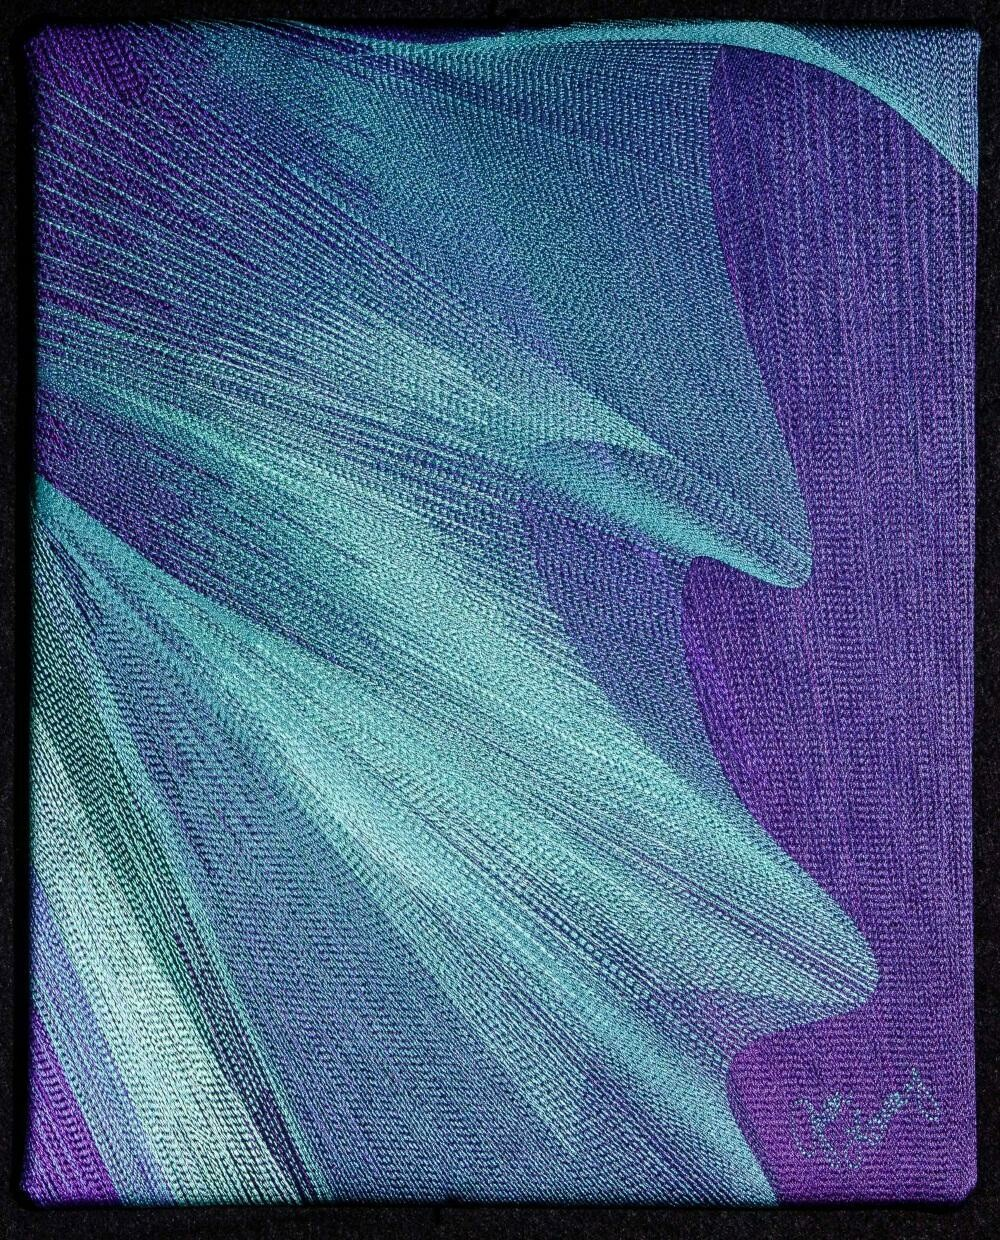 Machine stitching on canvas 14 (Title unspecified)